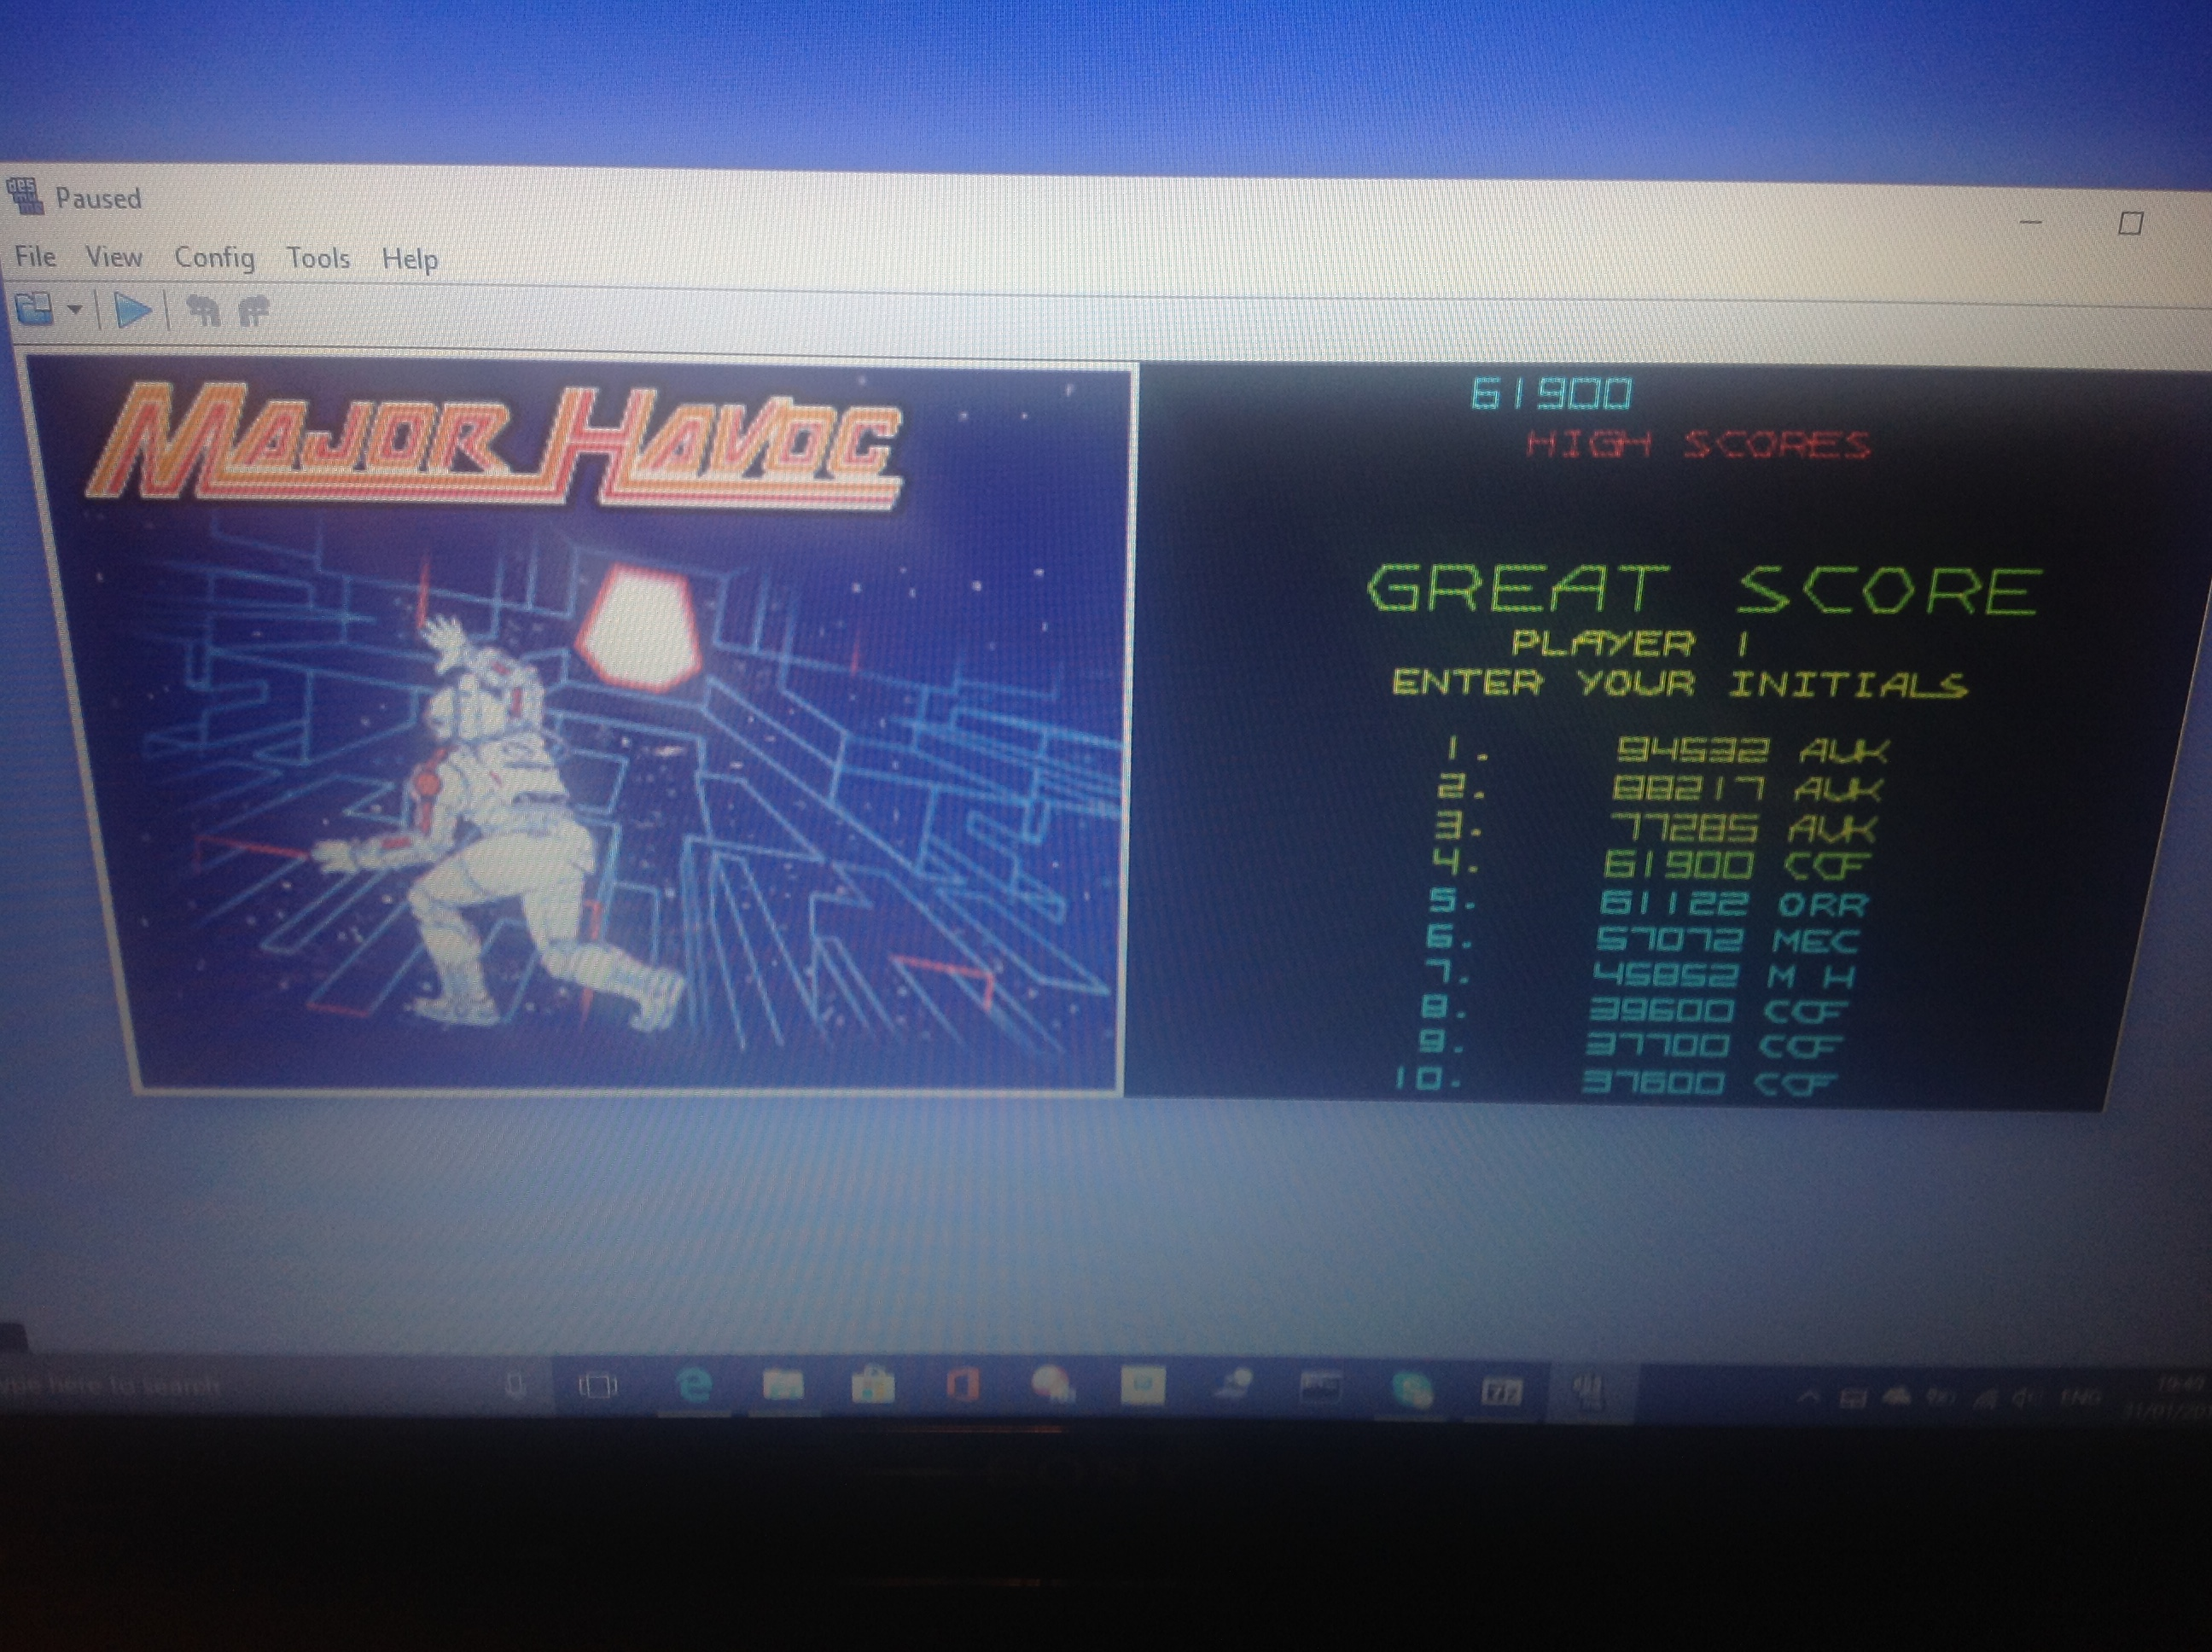 CoCoForest: Atari Greatest Hits: Volume 2: Major Havoc [Arcade] (Nintendo DS Emulated) 61,900 points on 2018-01-31 13:50:39